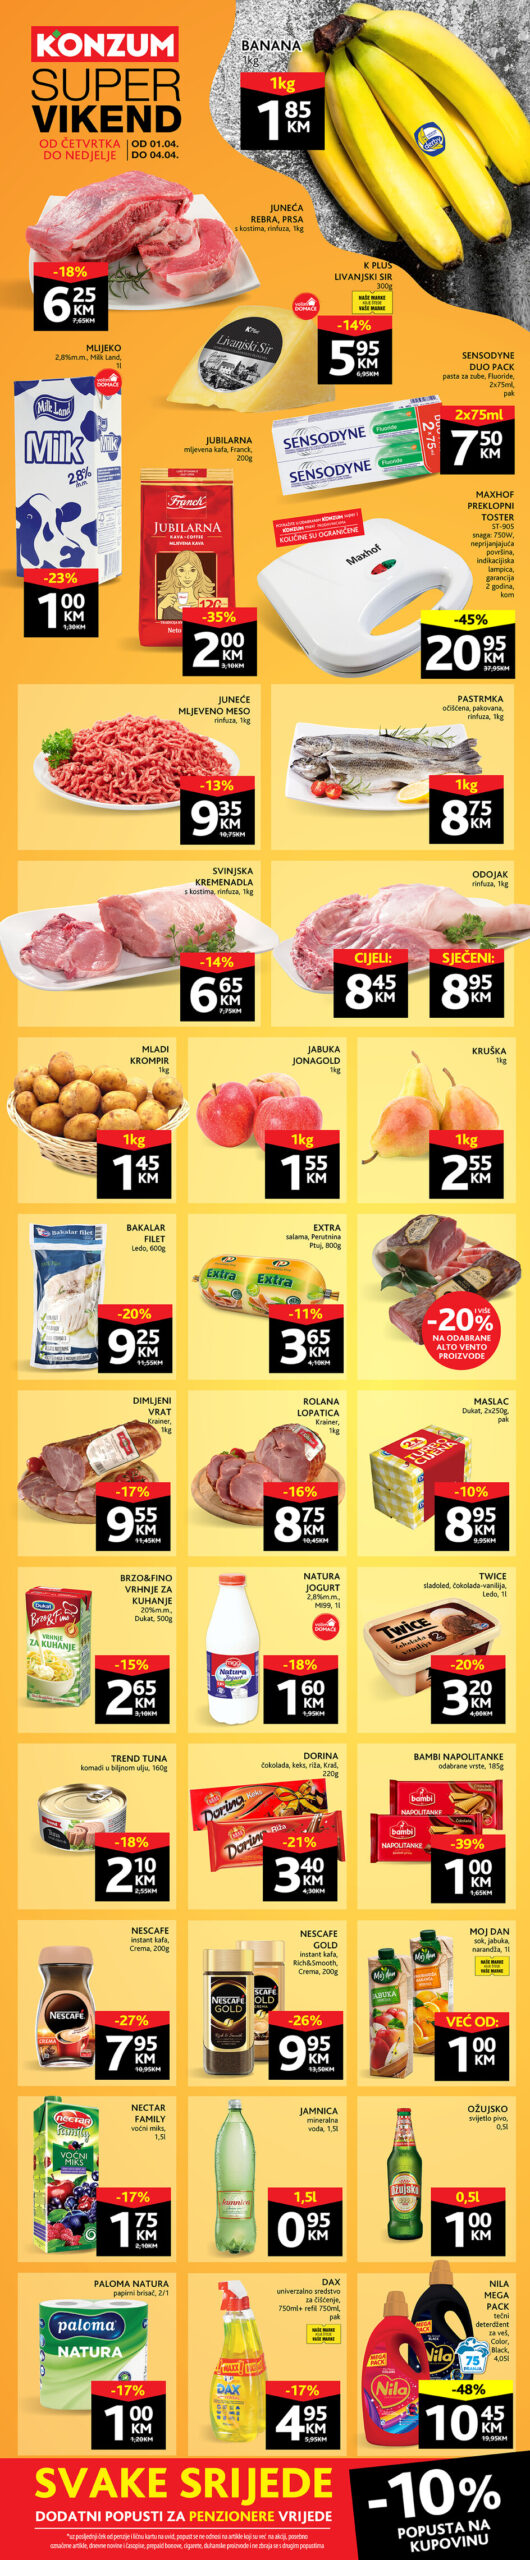 KONZUM Katalog Vikend akcija APRIL 2021 01.04.2021. 04.04.2021